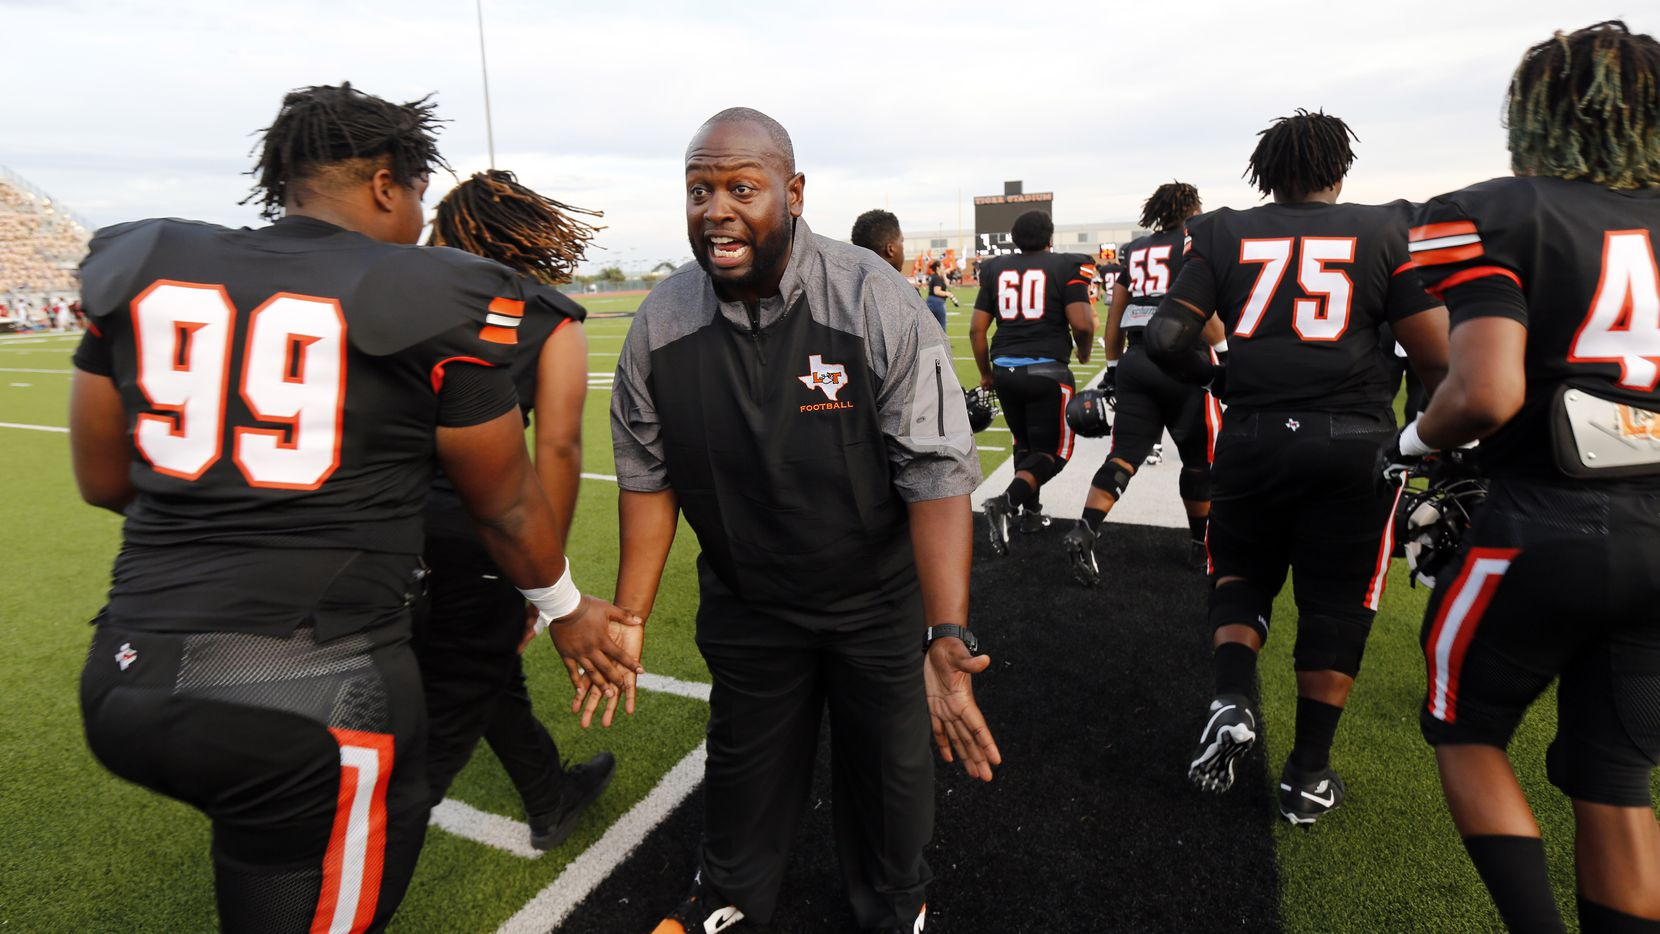 Lancaster head coach Christopher Gilbert slaps hands with his players after the team's introduction at Beverly D. Humphrey Tiger Stadium in Lancaster Texas, Friday, August 30, 2019.